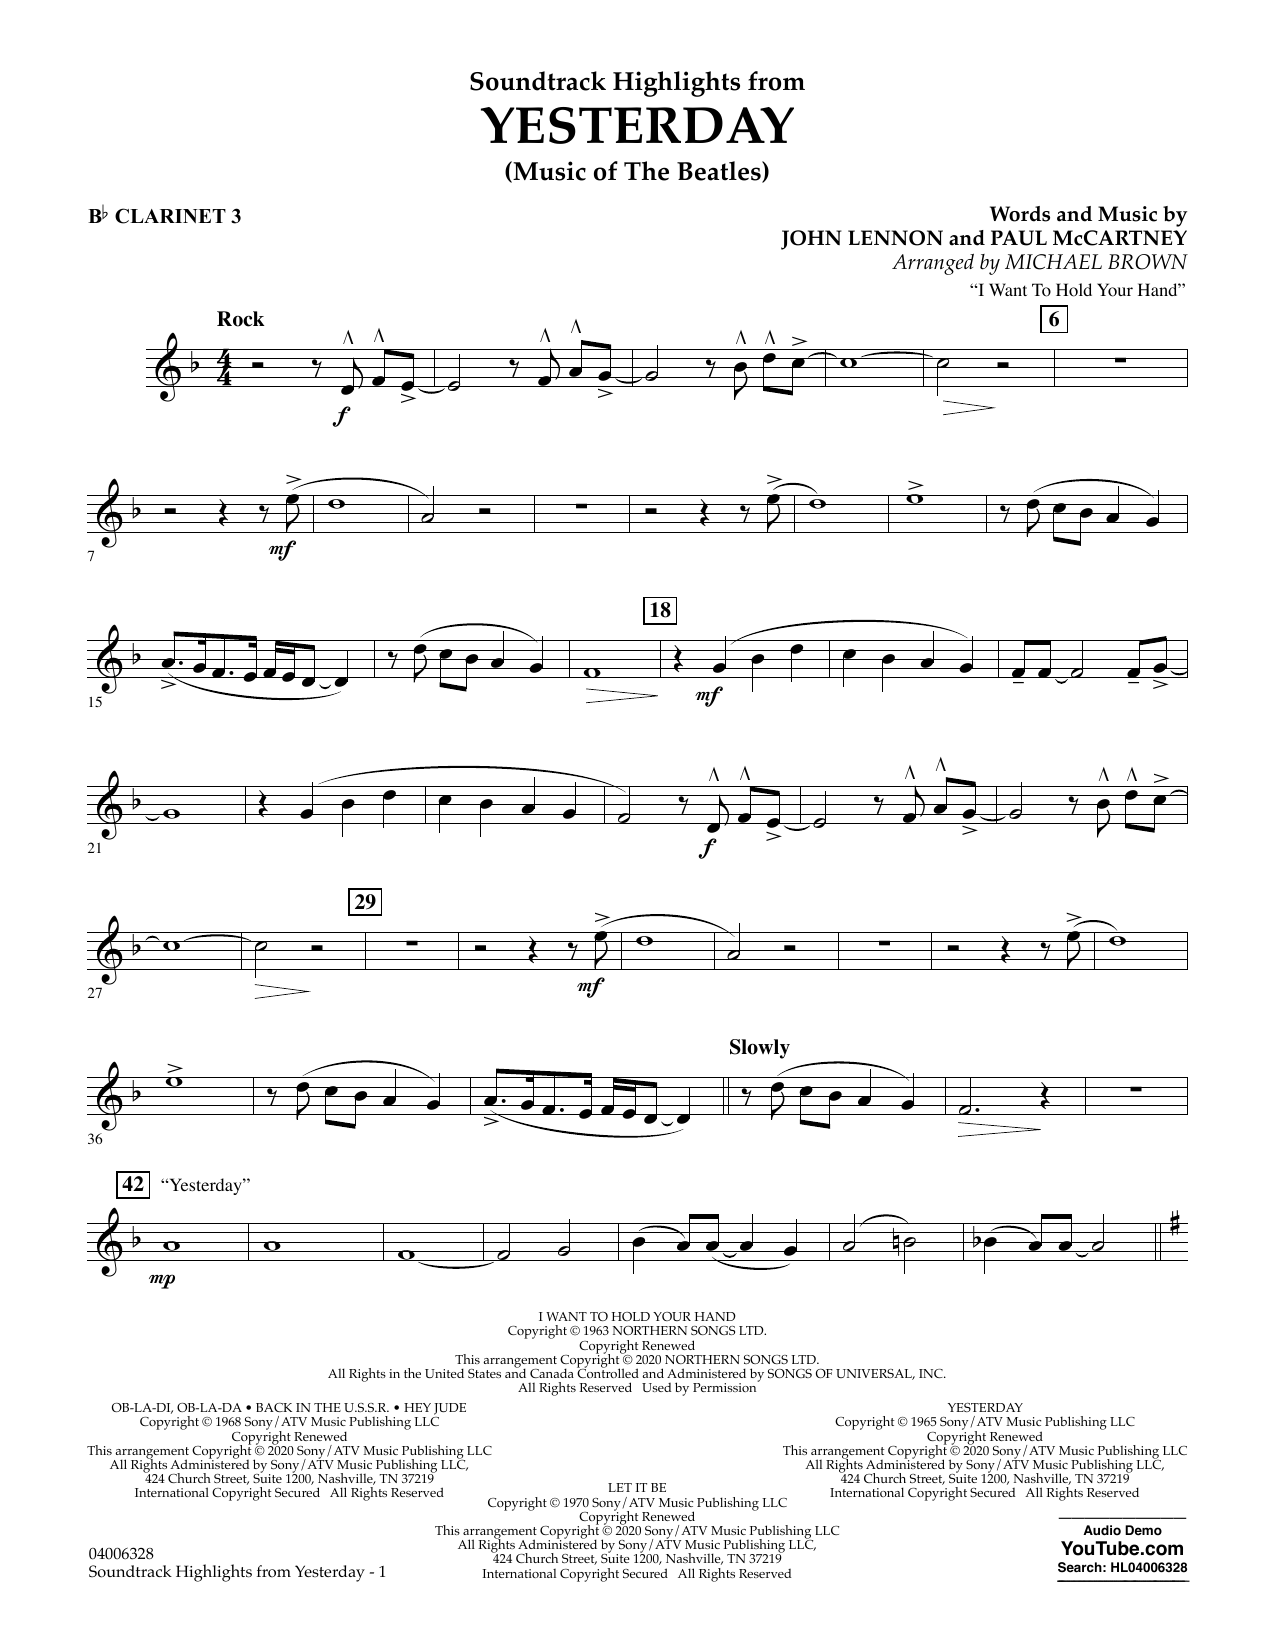 The Beatles Highlights from Yesterday (Music Of The Beatles) (arr. Michael Brown) - Bb Clarinet 3 sheet music notes and chords. Download Printable PDF.